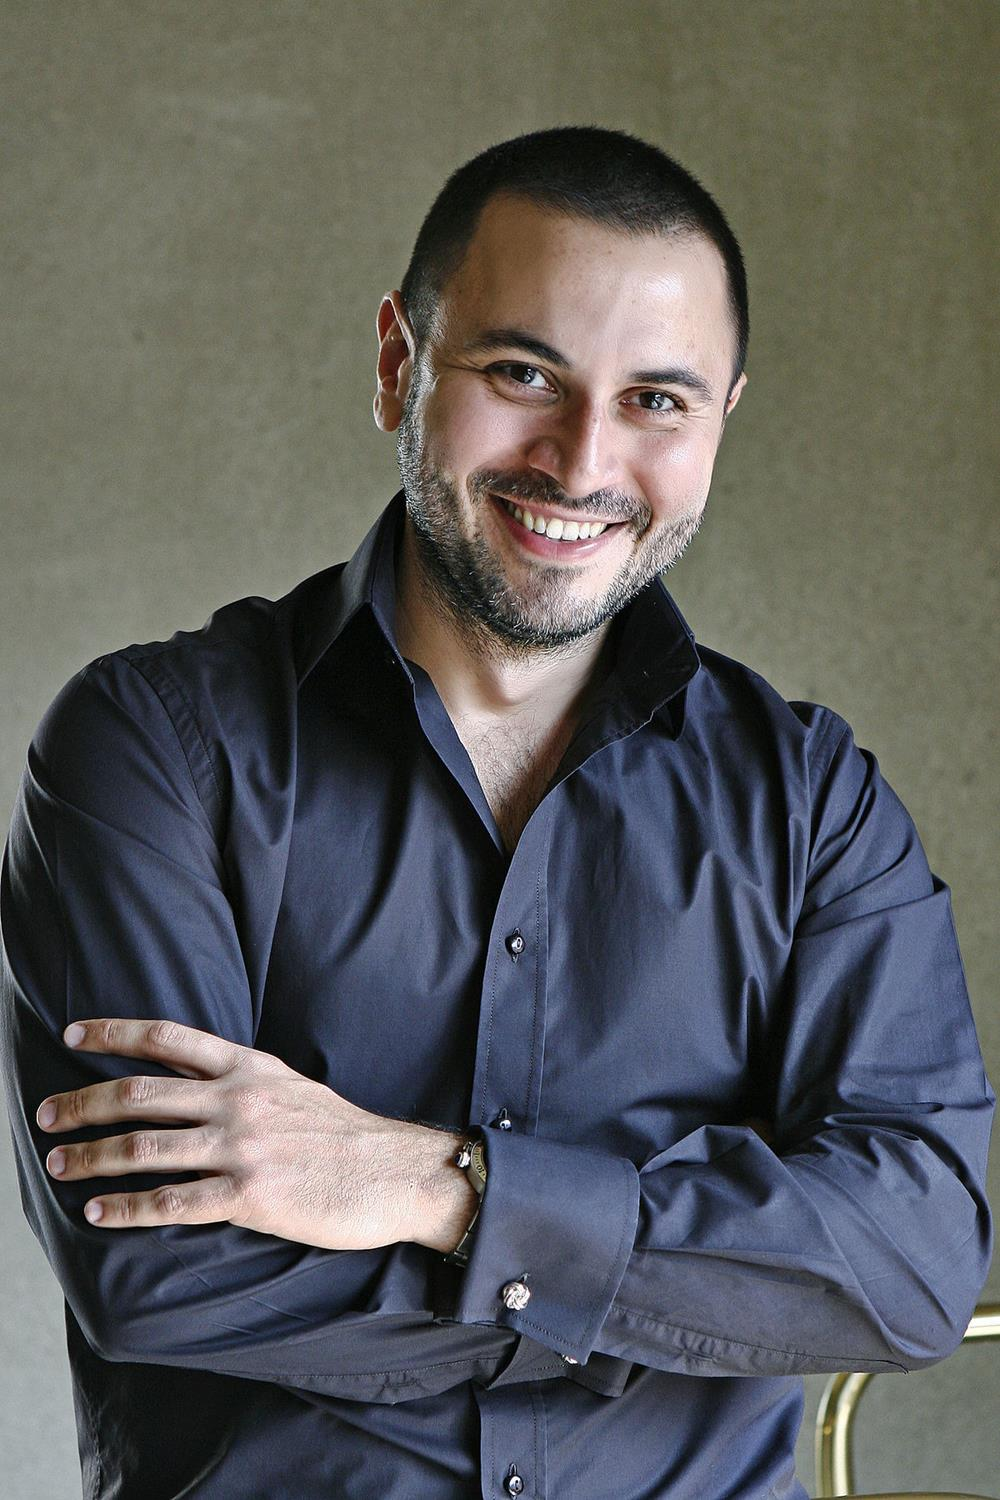 andre lima (Copy)